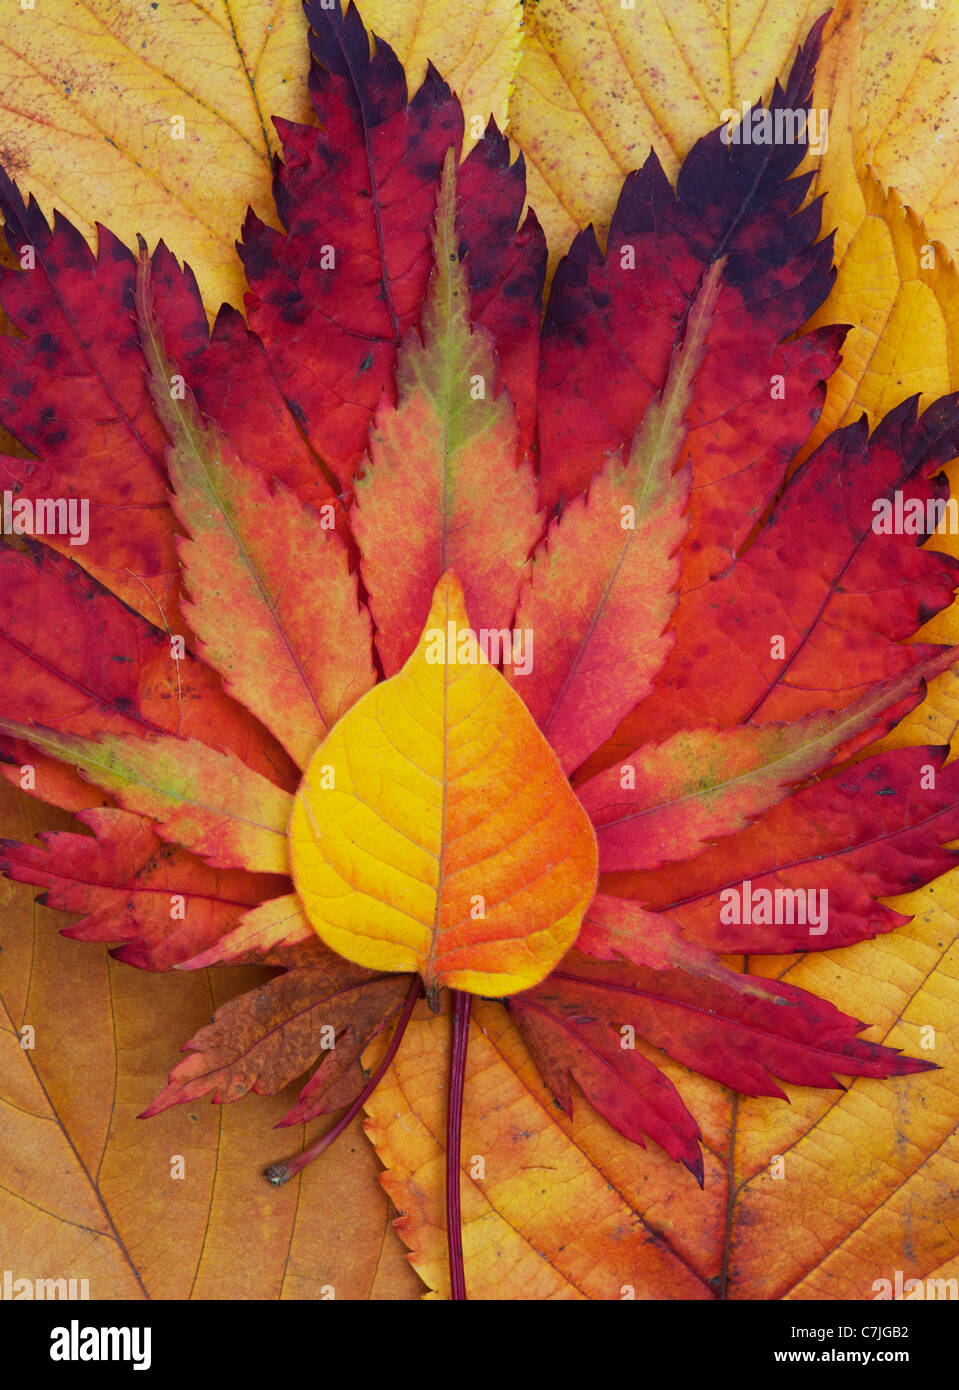 Acer and autumn leaf pattern. Japanese Maple and various other leaves changing colour in autumn. Stock Photo